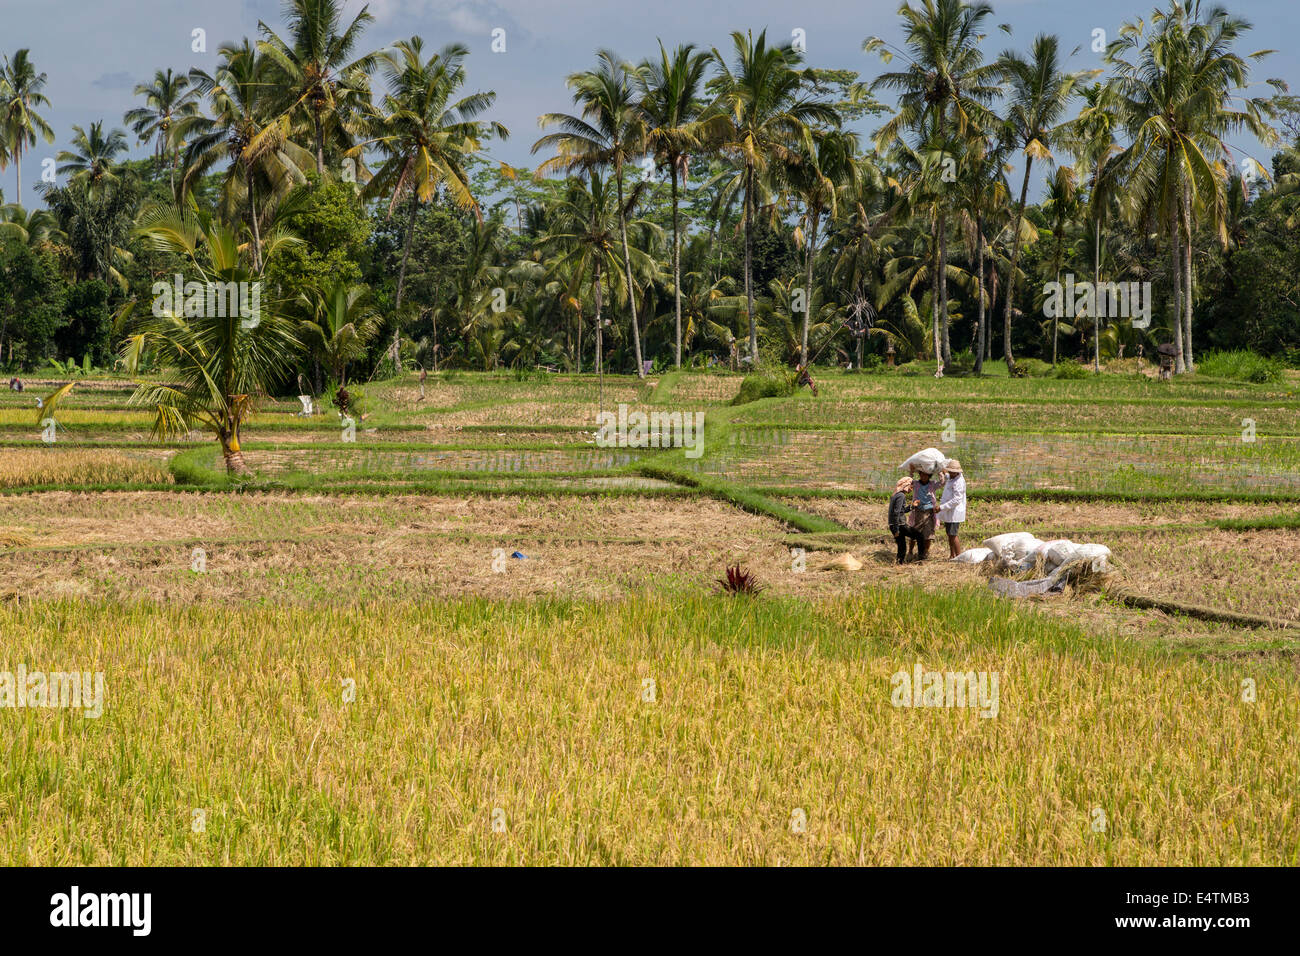 Bali, Indonesia.  Terraced Rice Fields.  Women Carrying Sacks of Rice. - Stock Image